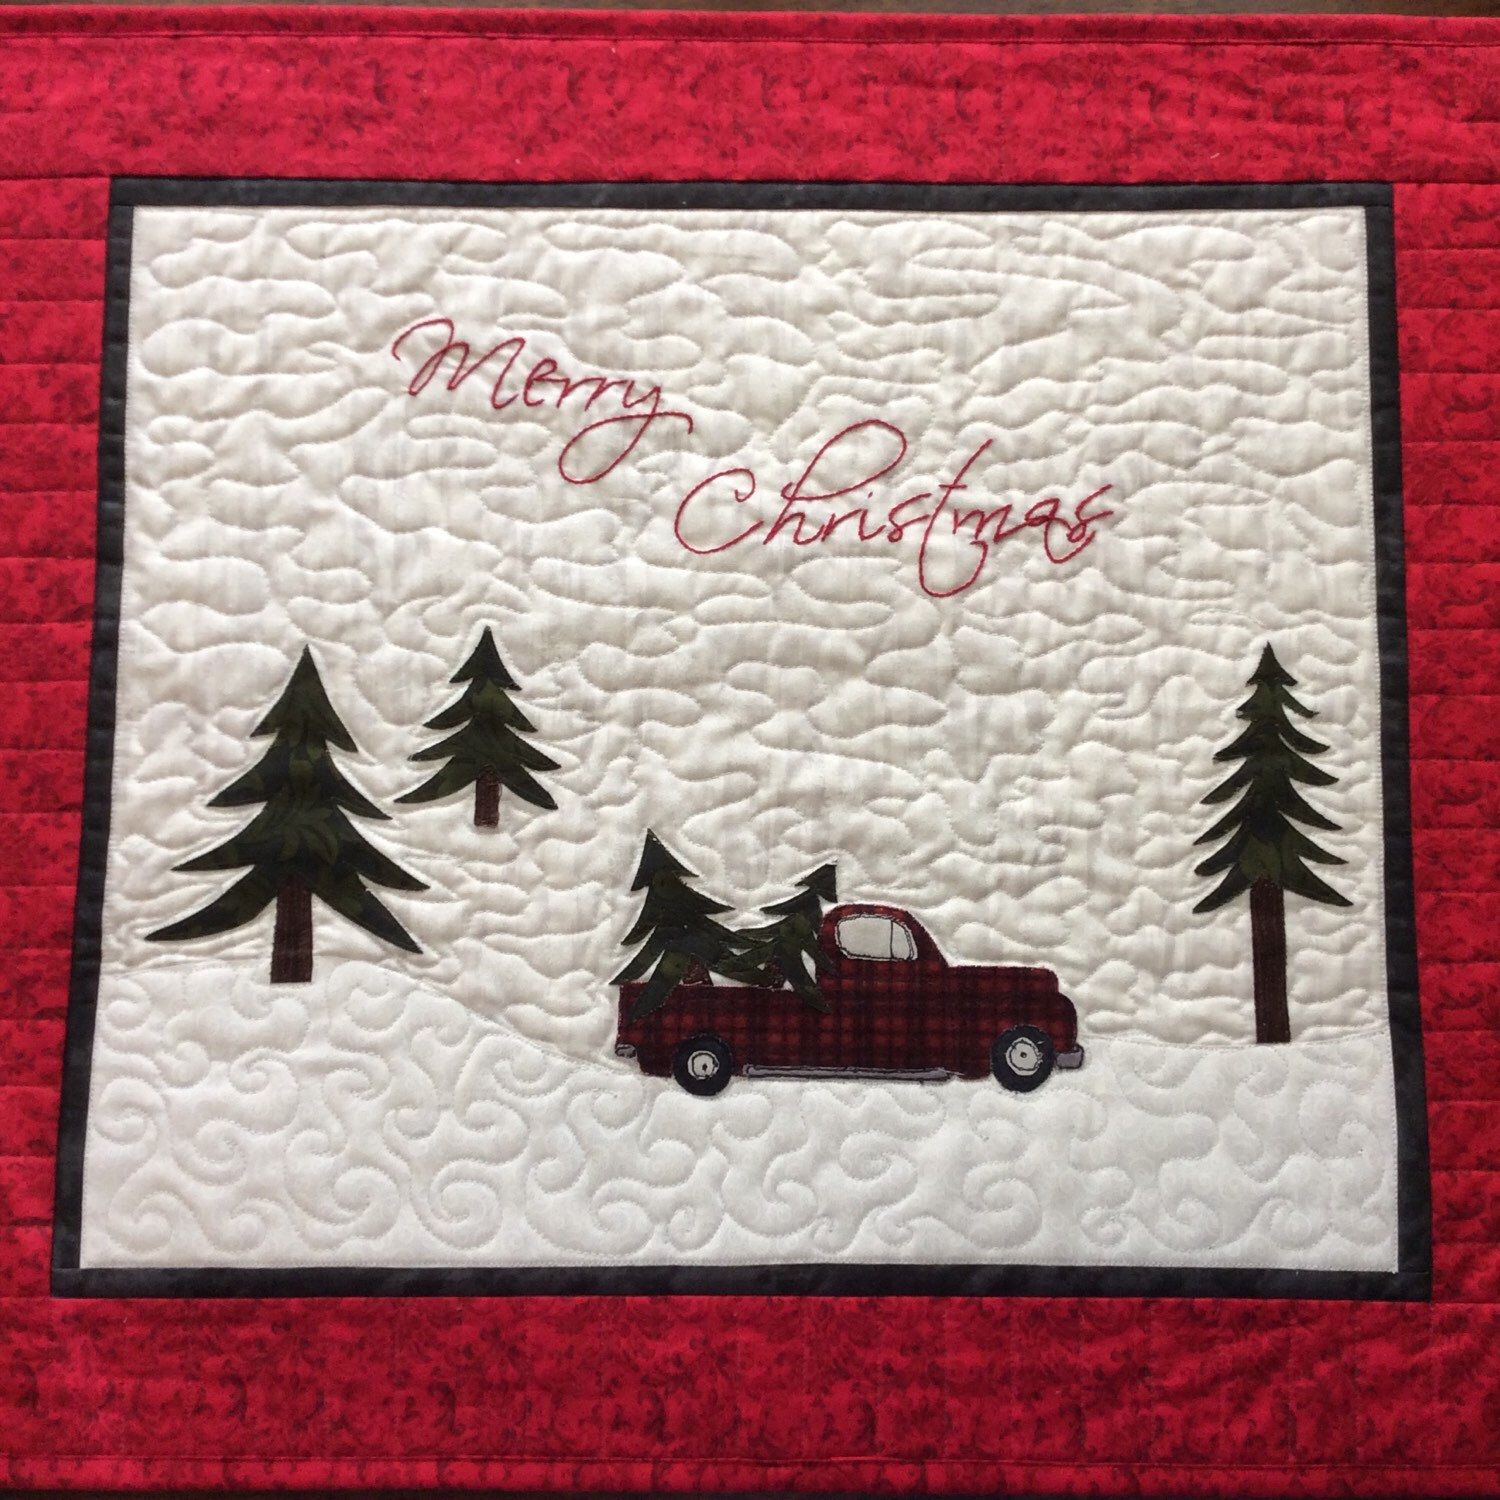 Darling Christmas Quilt With A Red Plaid Pickup Truck Hauling